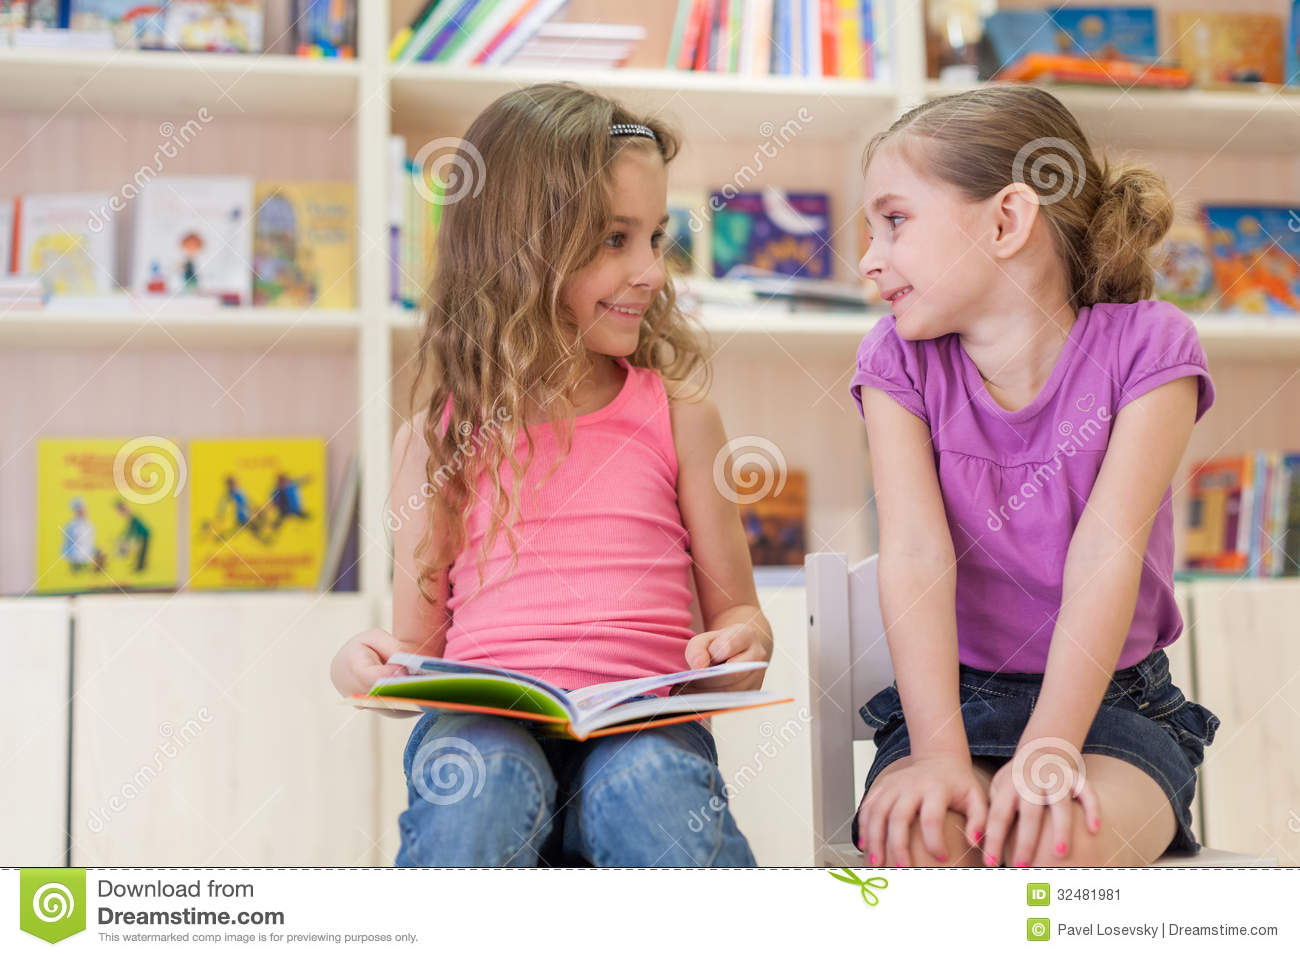 2 girls reading a dirty magazine 2